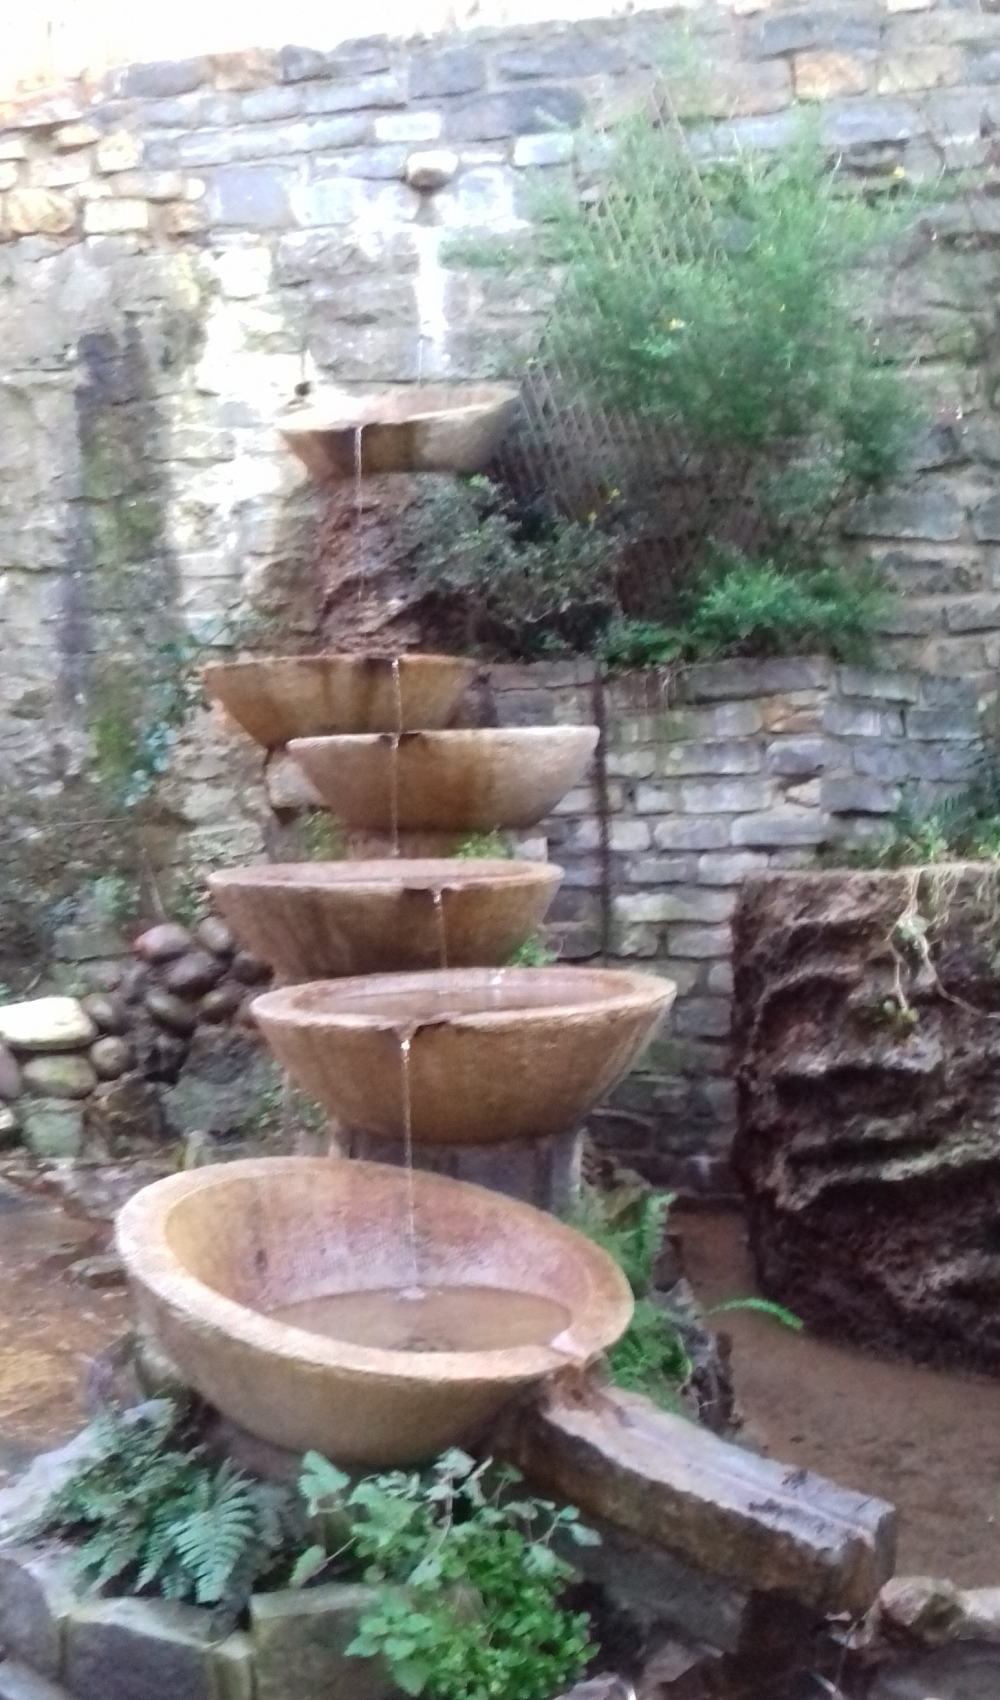 Some small water features